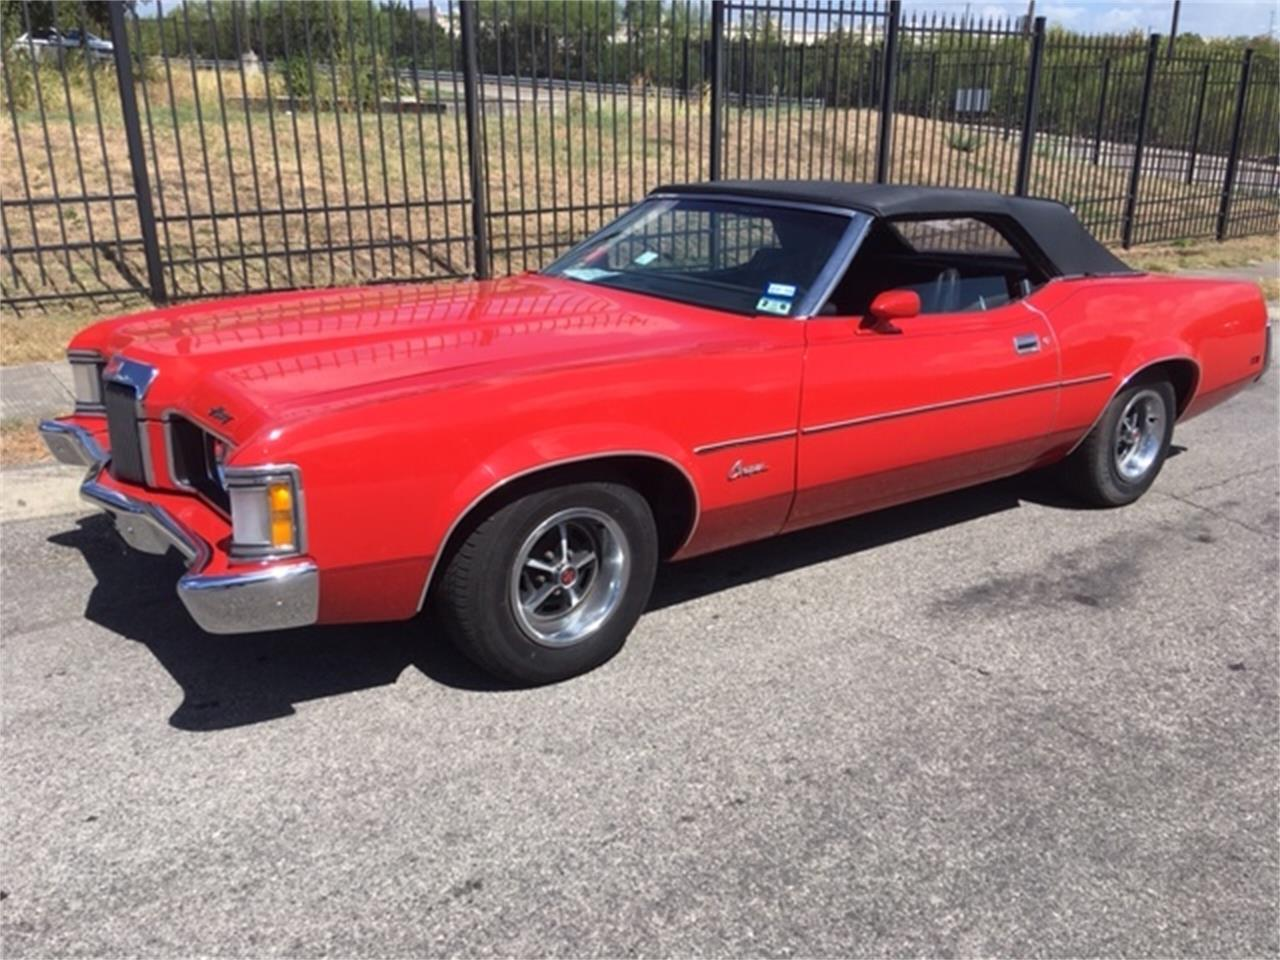 1973 Mercury Cougar XR7 (CC-1307031) for sale in San Antonio, Texas